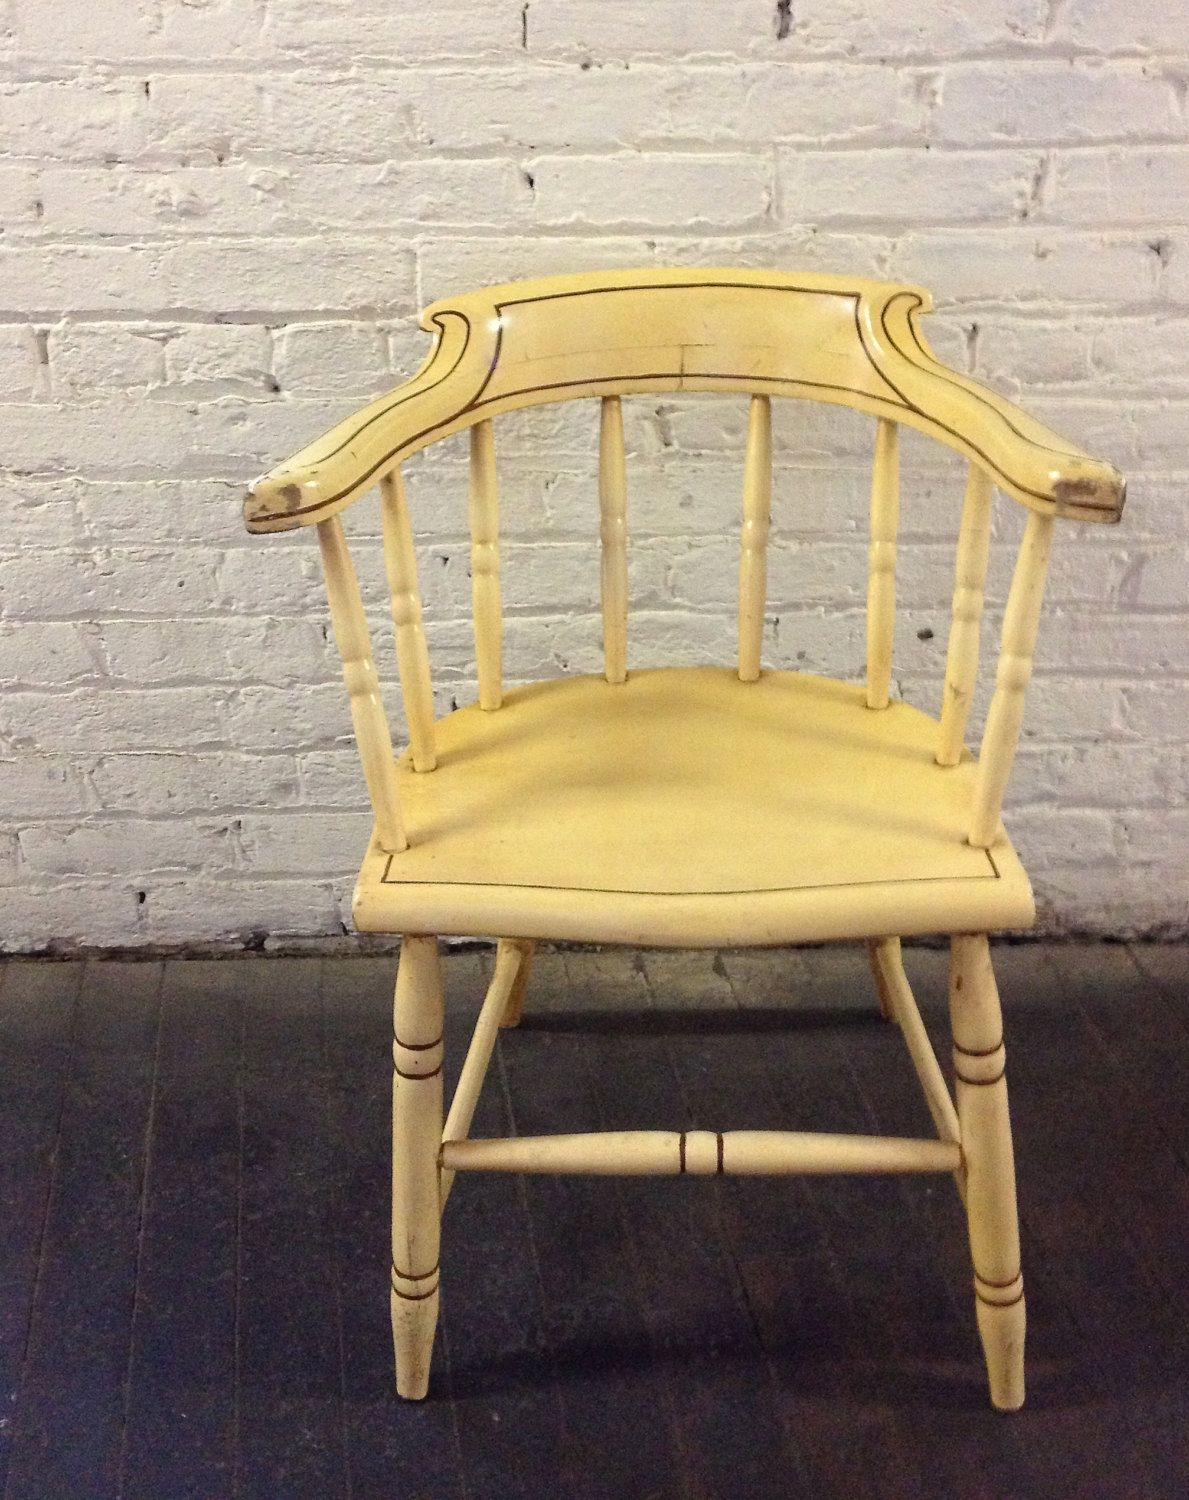 Pale yellow vintage wooden arm chair vintage pinterest arms